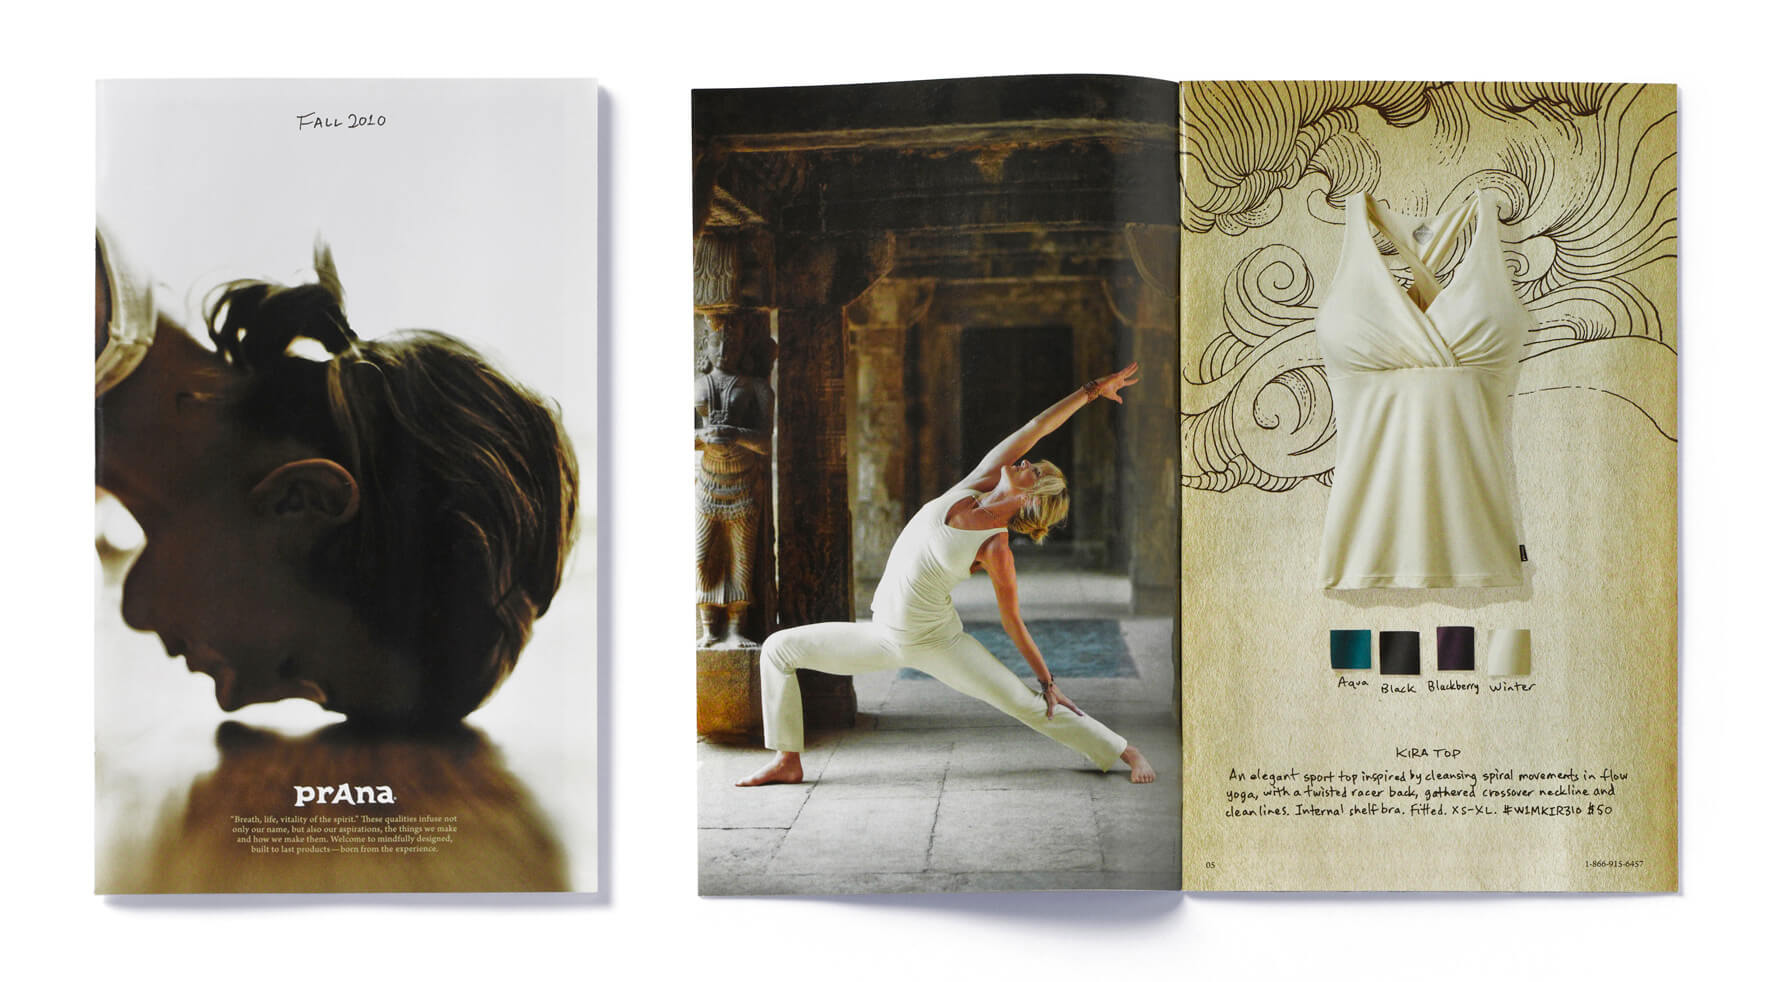 Prana catalog cover and open spread with yogi and white sleeveless top